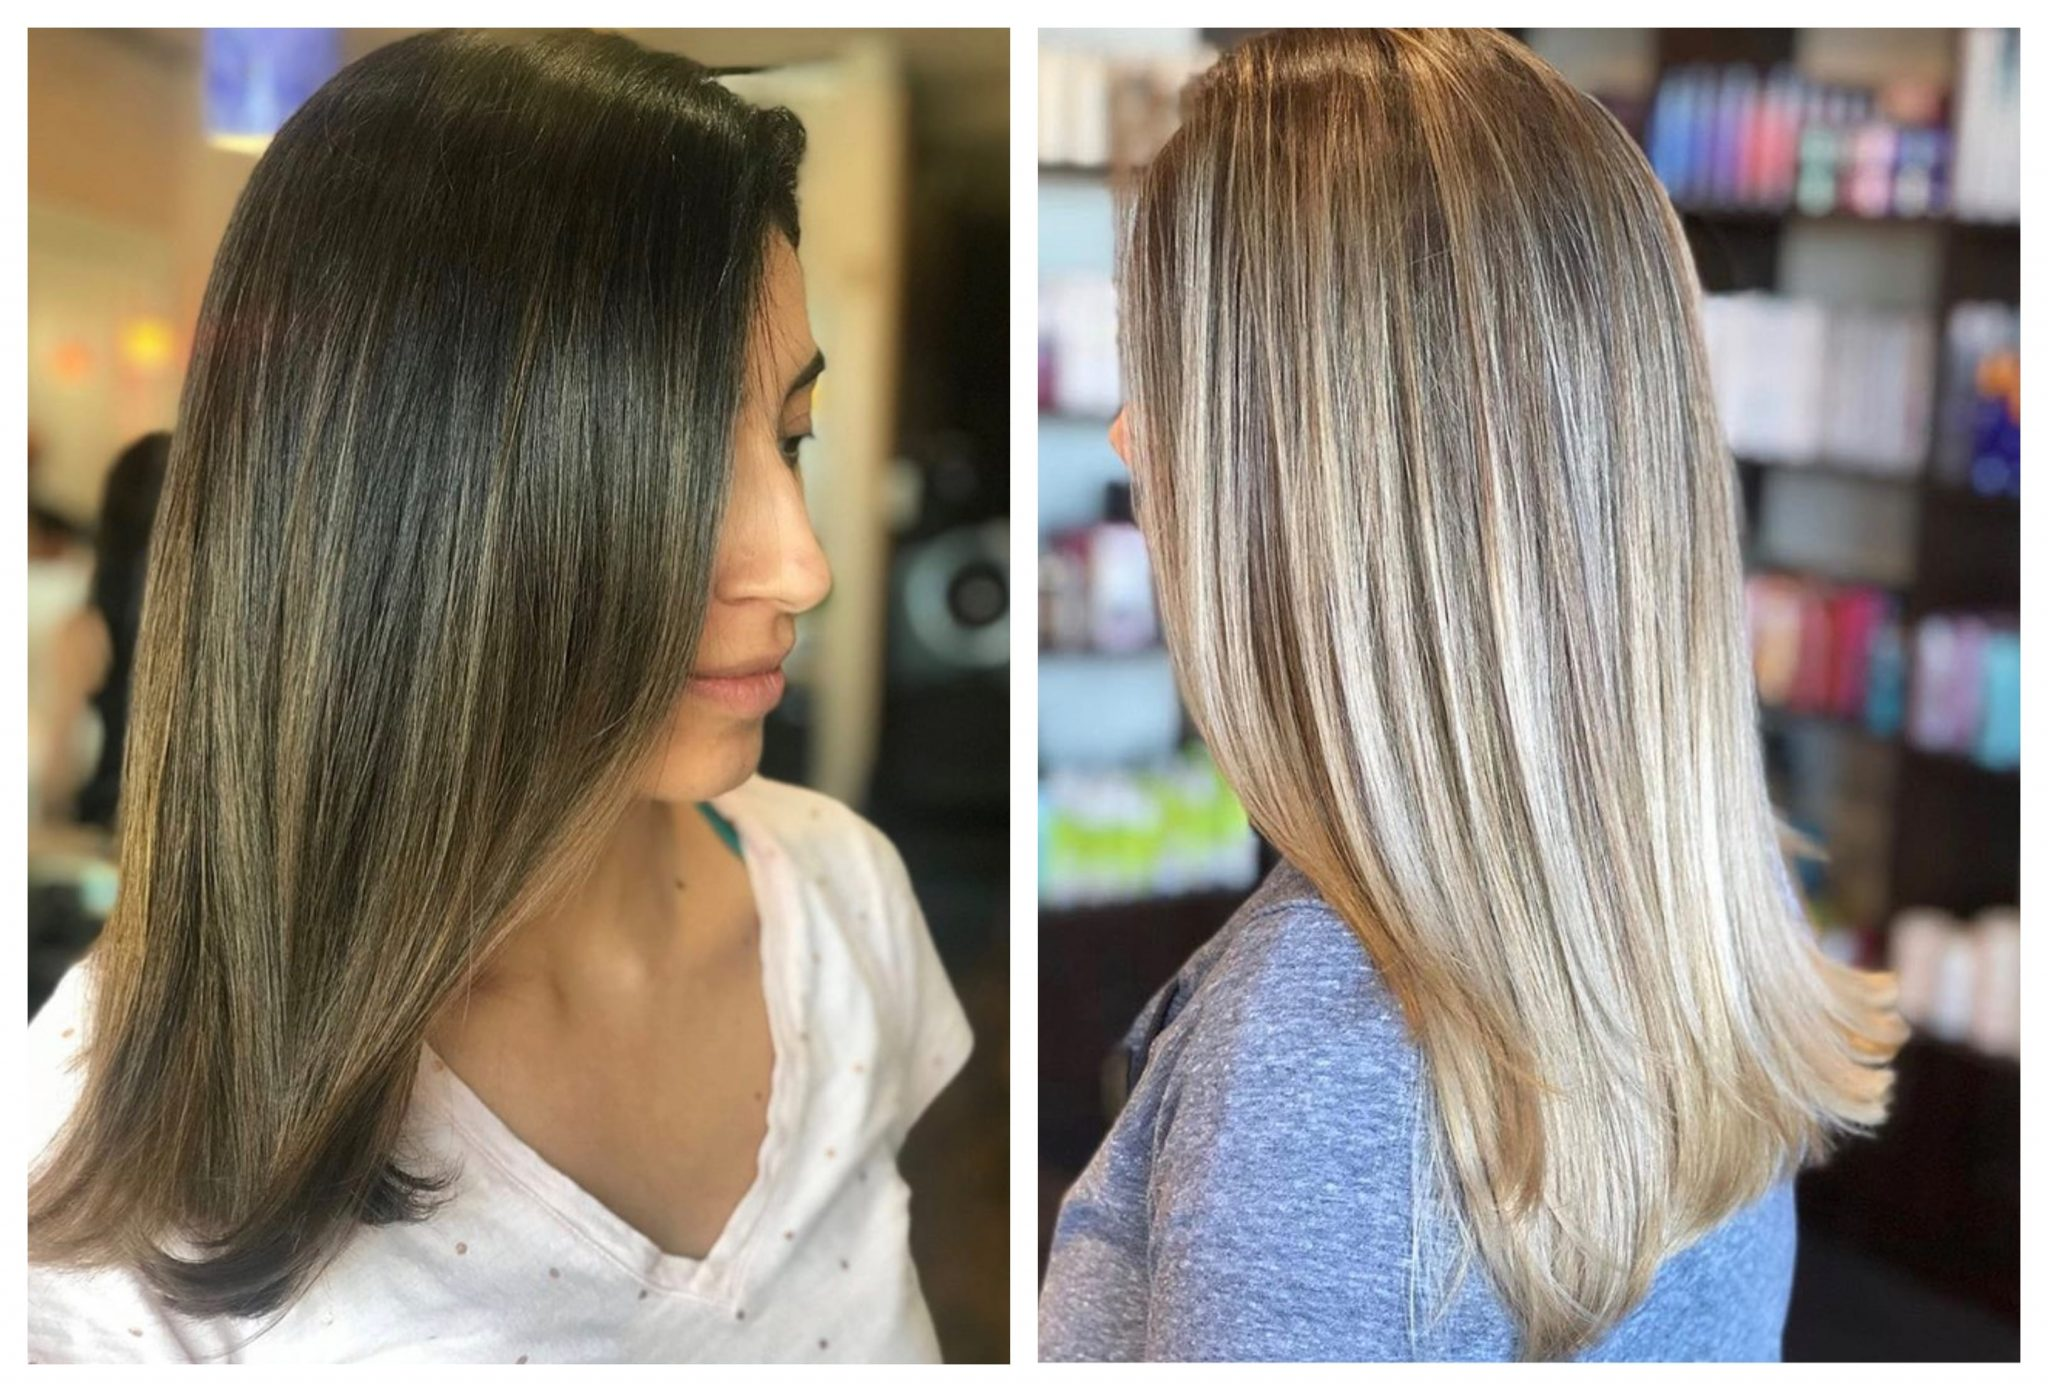 Whatu0027s Your Absolute Favorite Hair Trend Right Now?